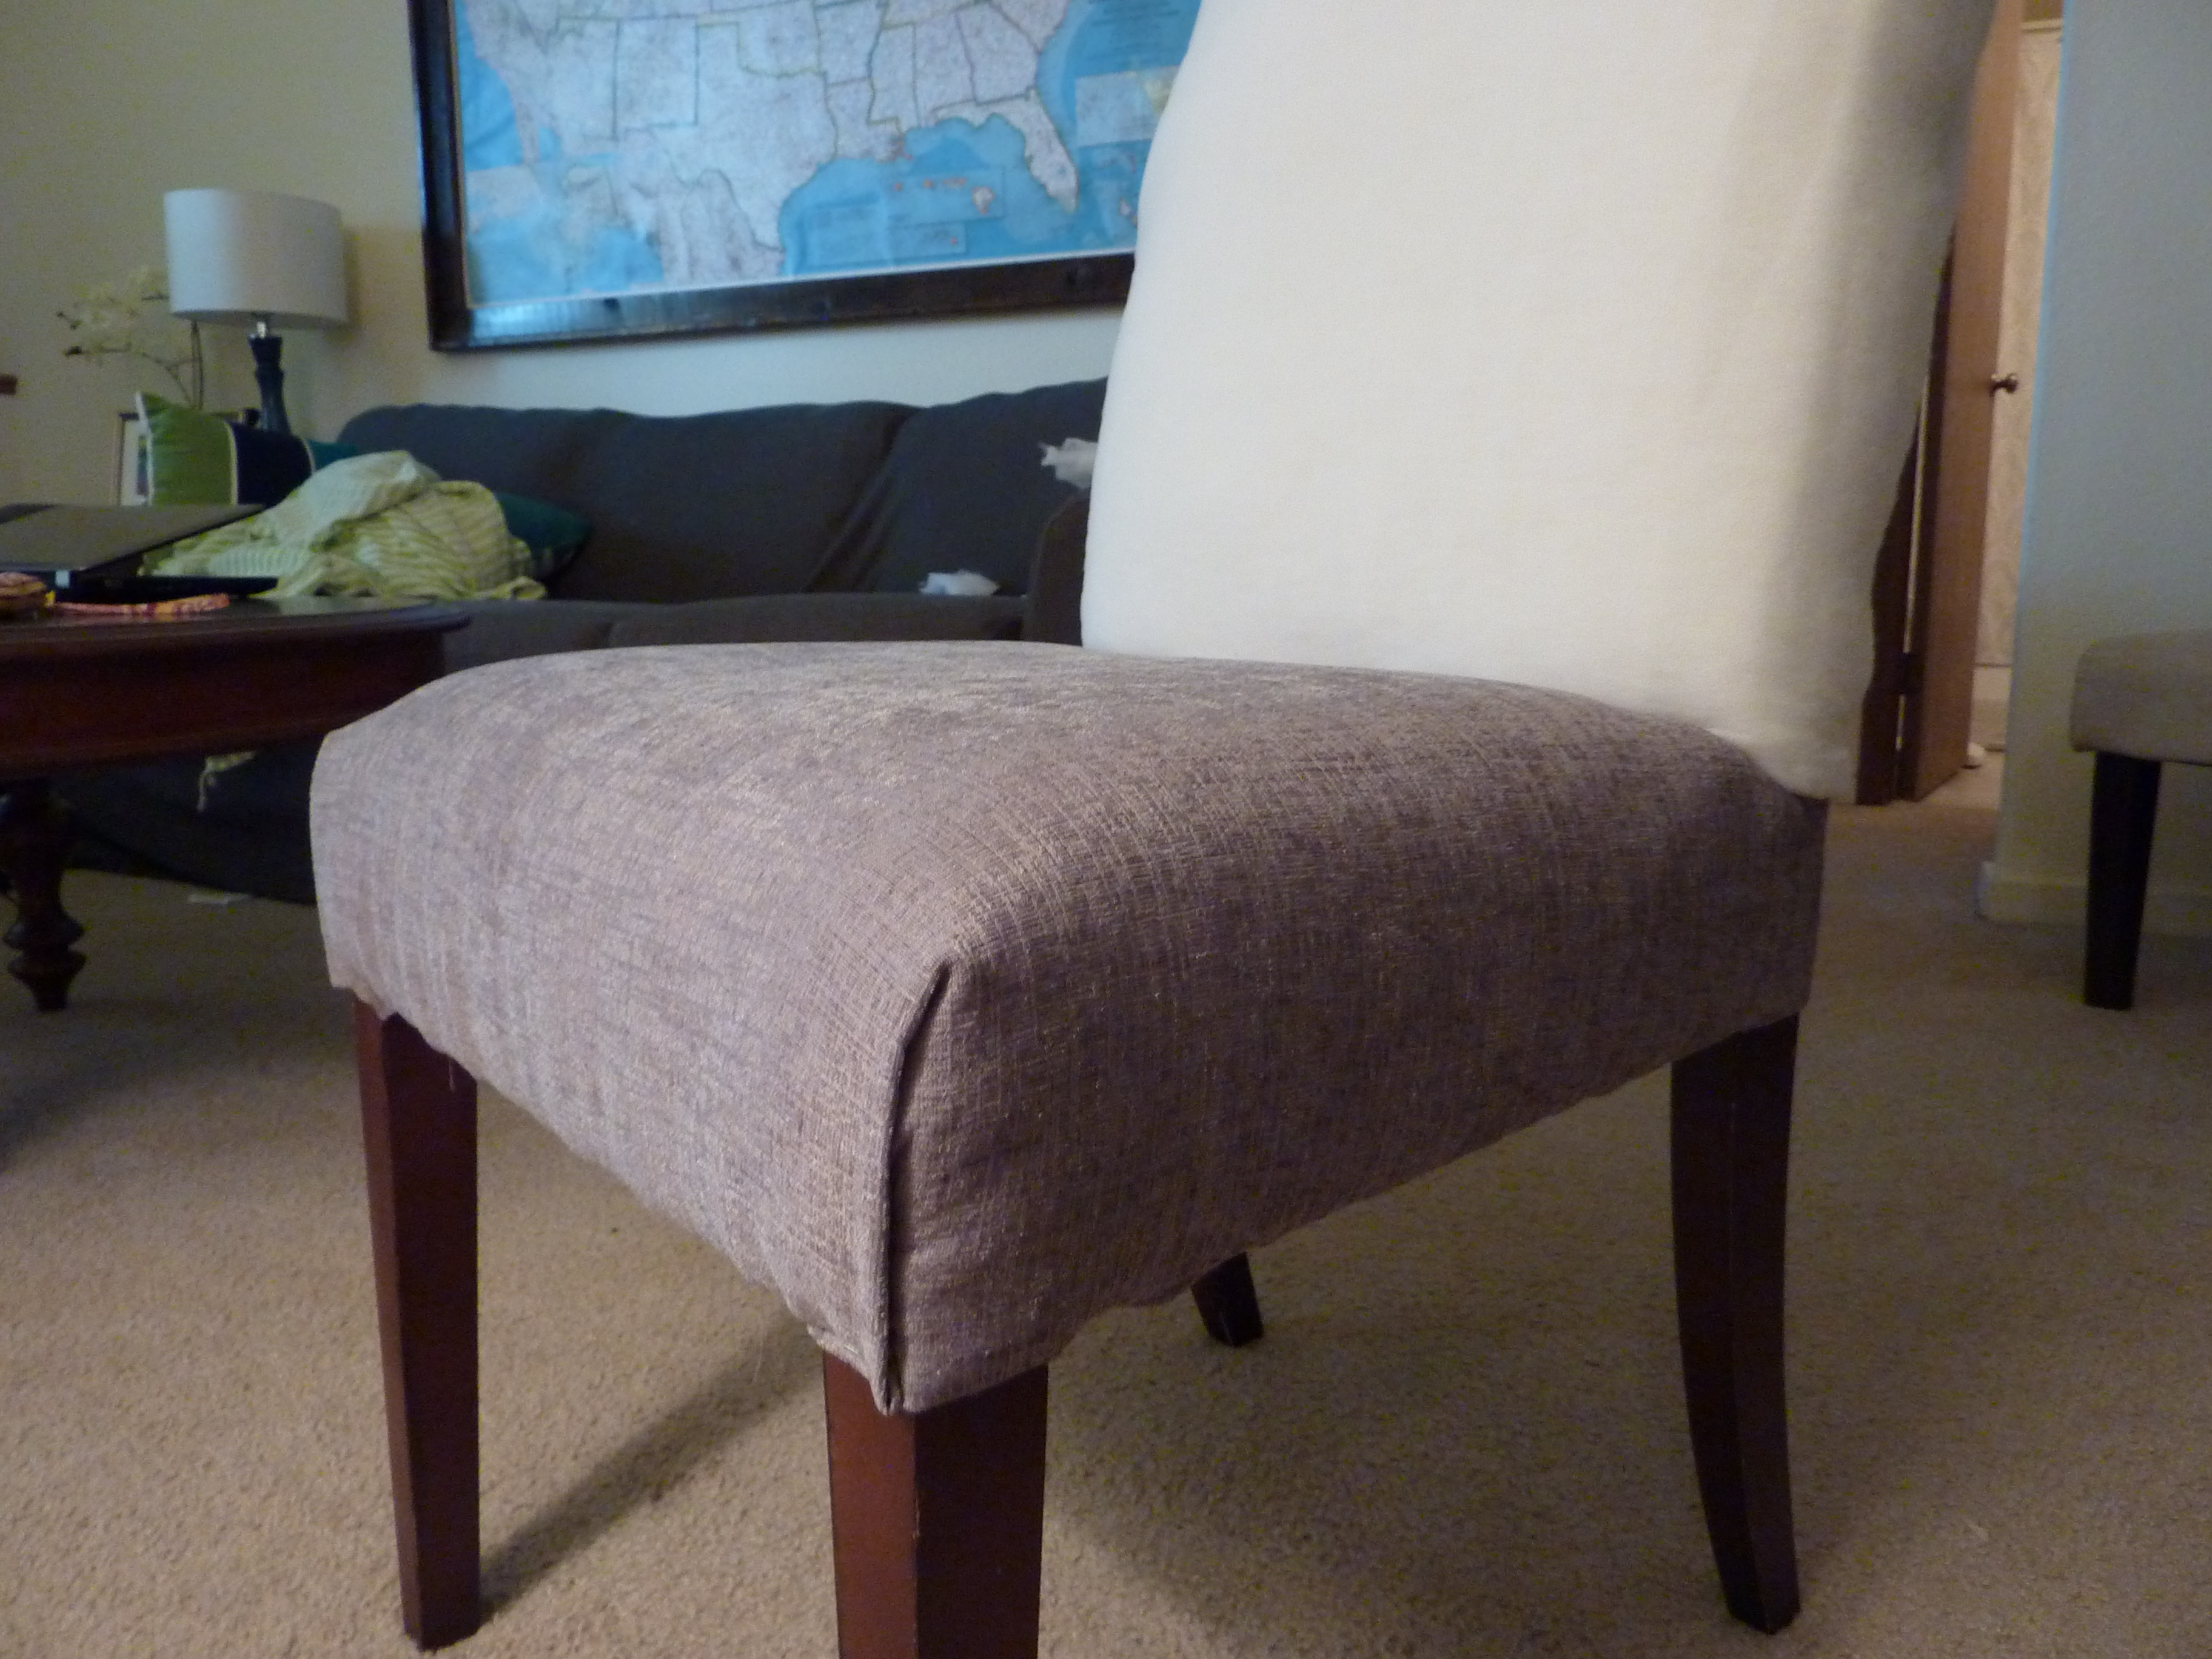 parsons chair cover tutorial bamboo dining chairs reupholstering a part 2 5 in which i